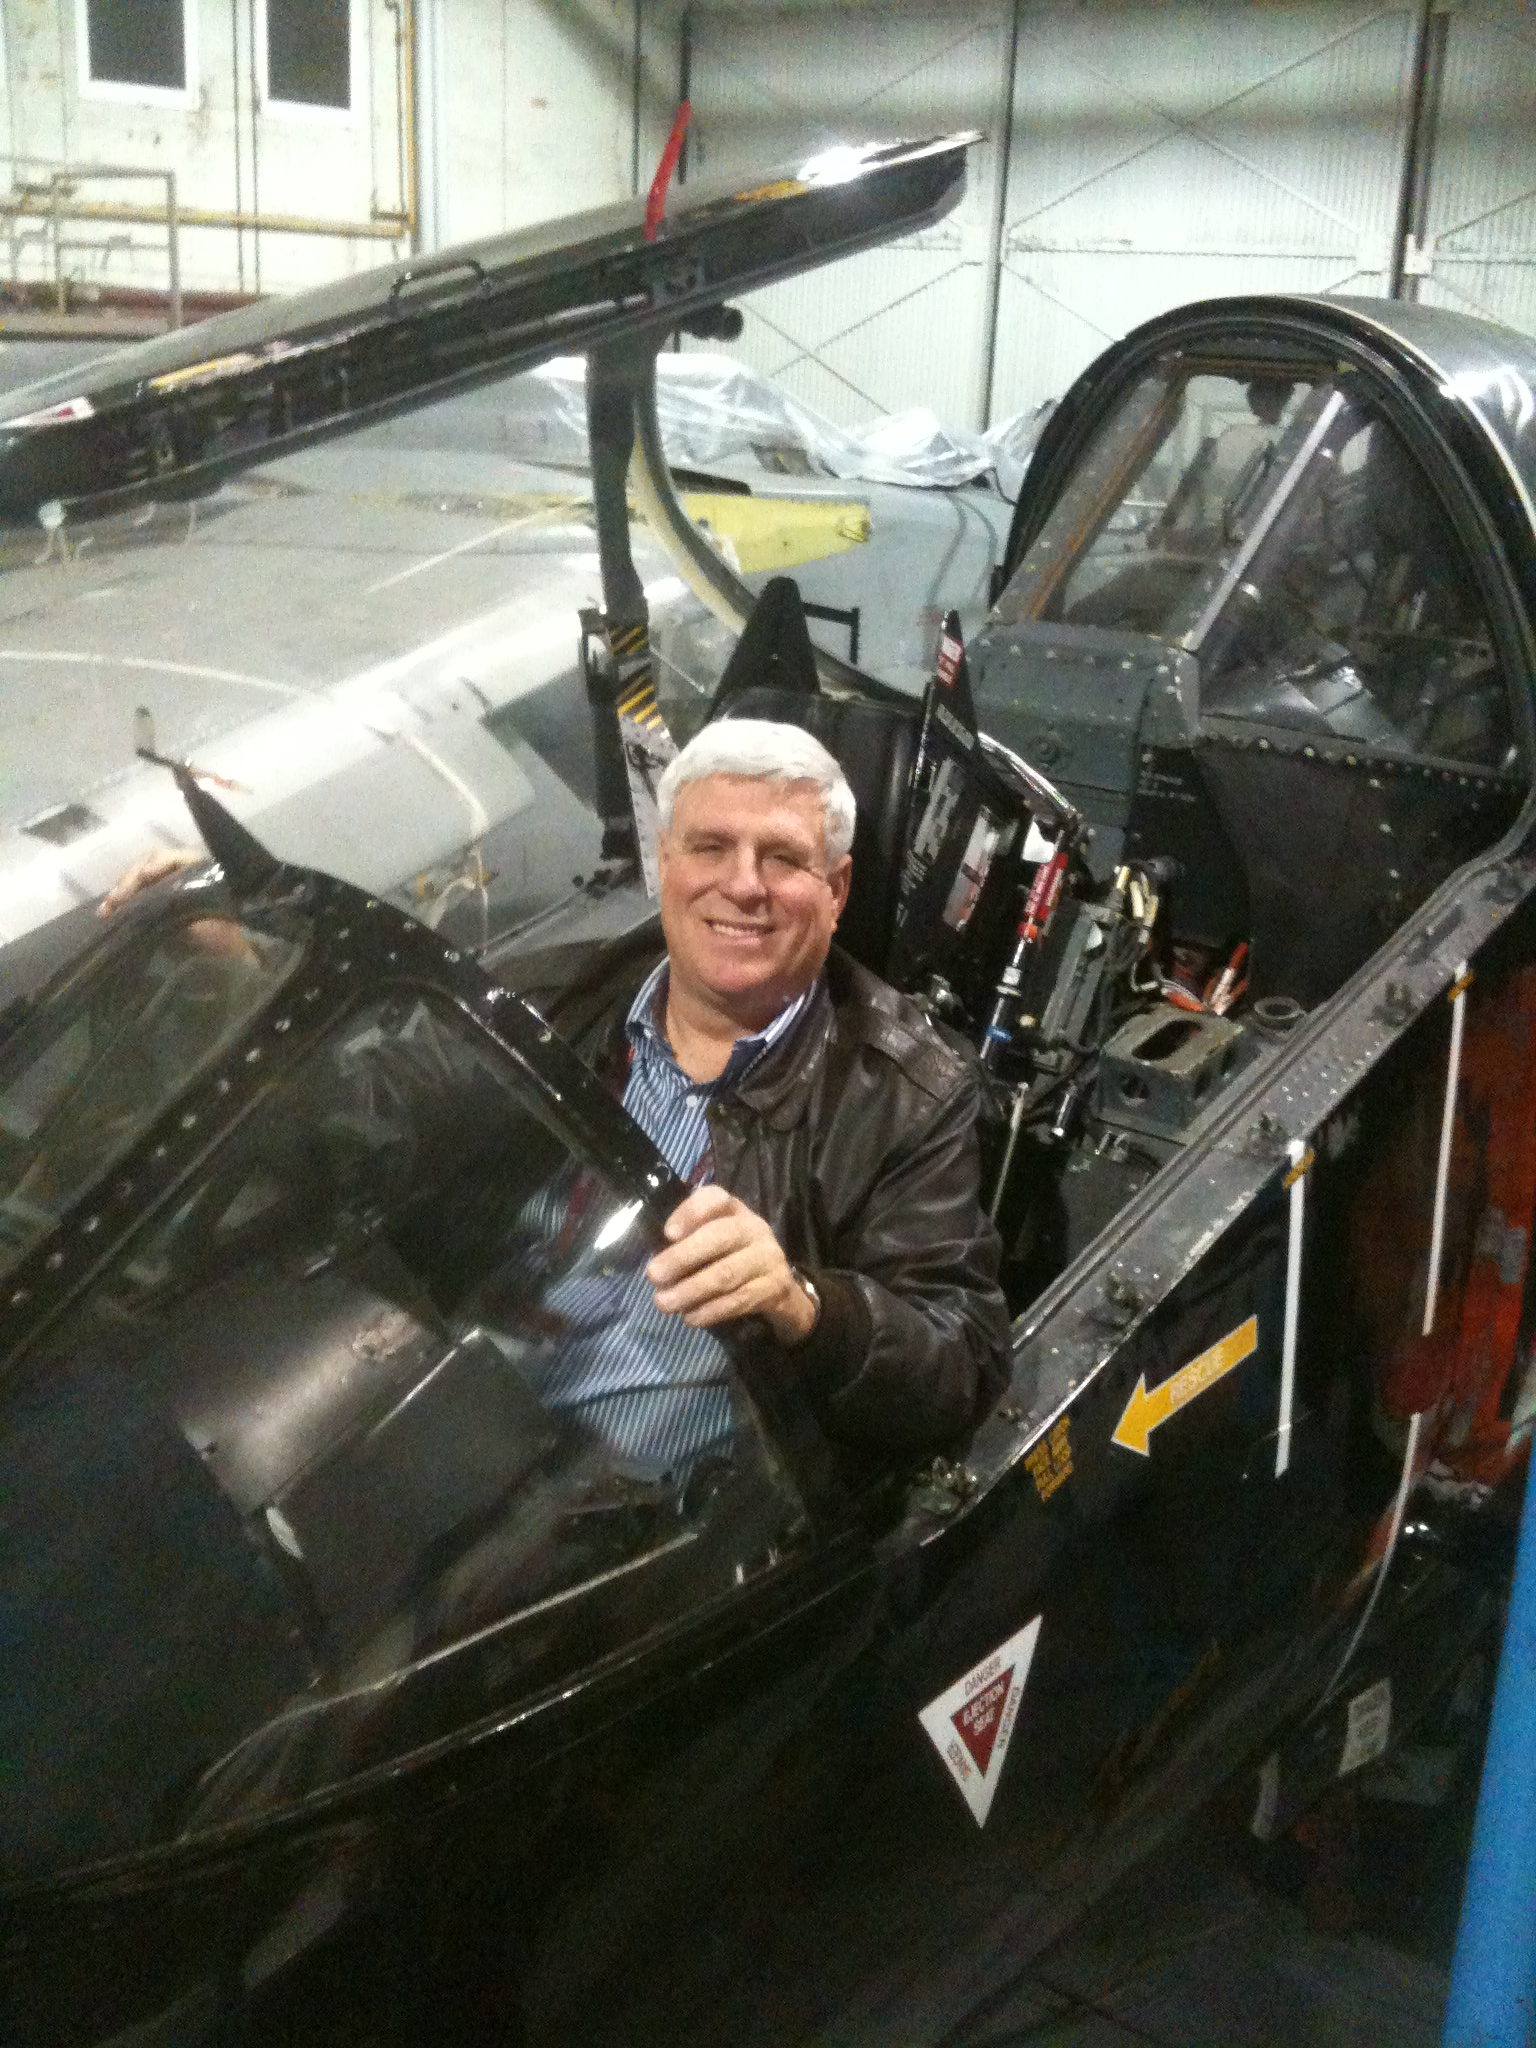 Art Nalls in the cockpit of his newly acquired Harrier. (photo via Art Nalls)